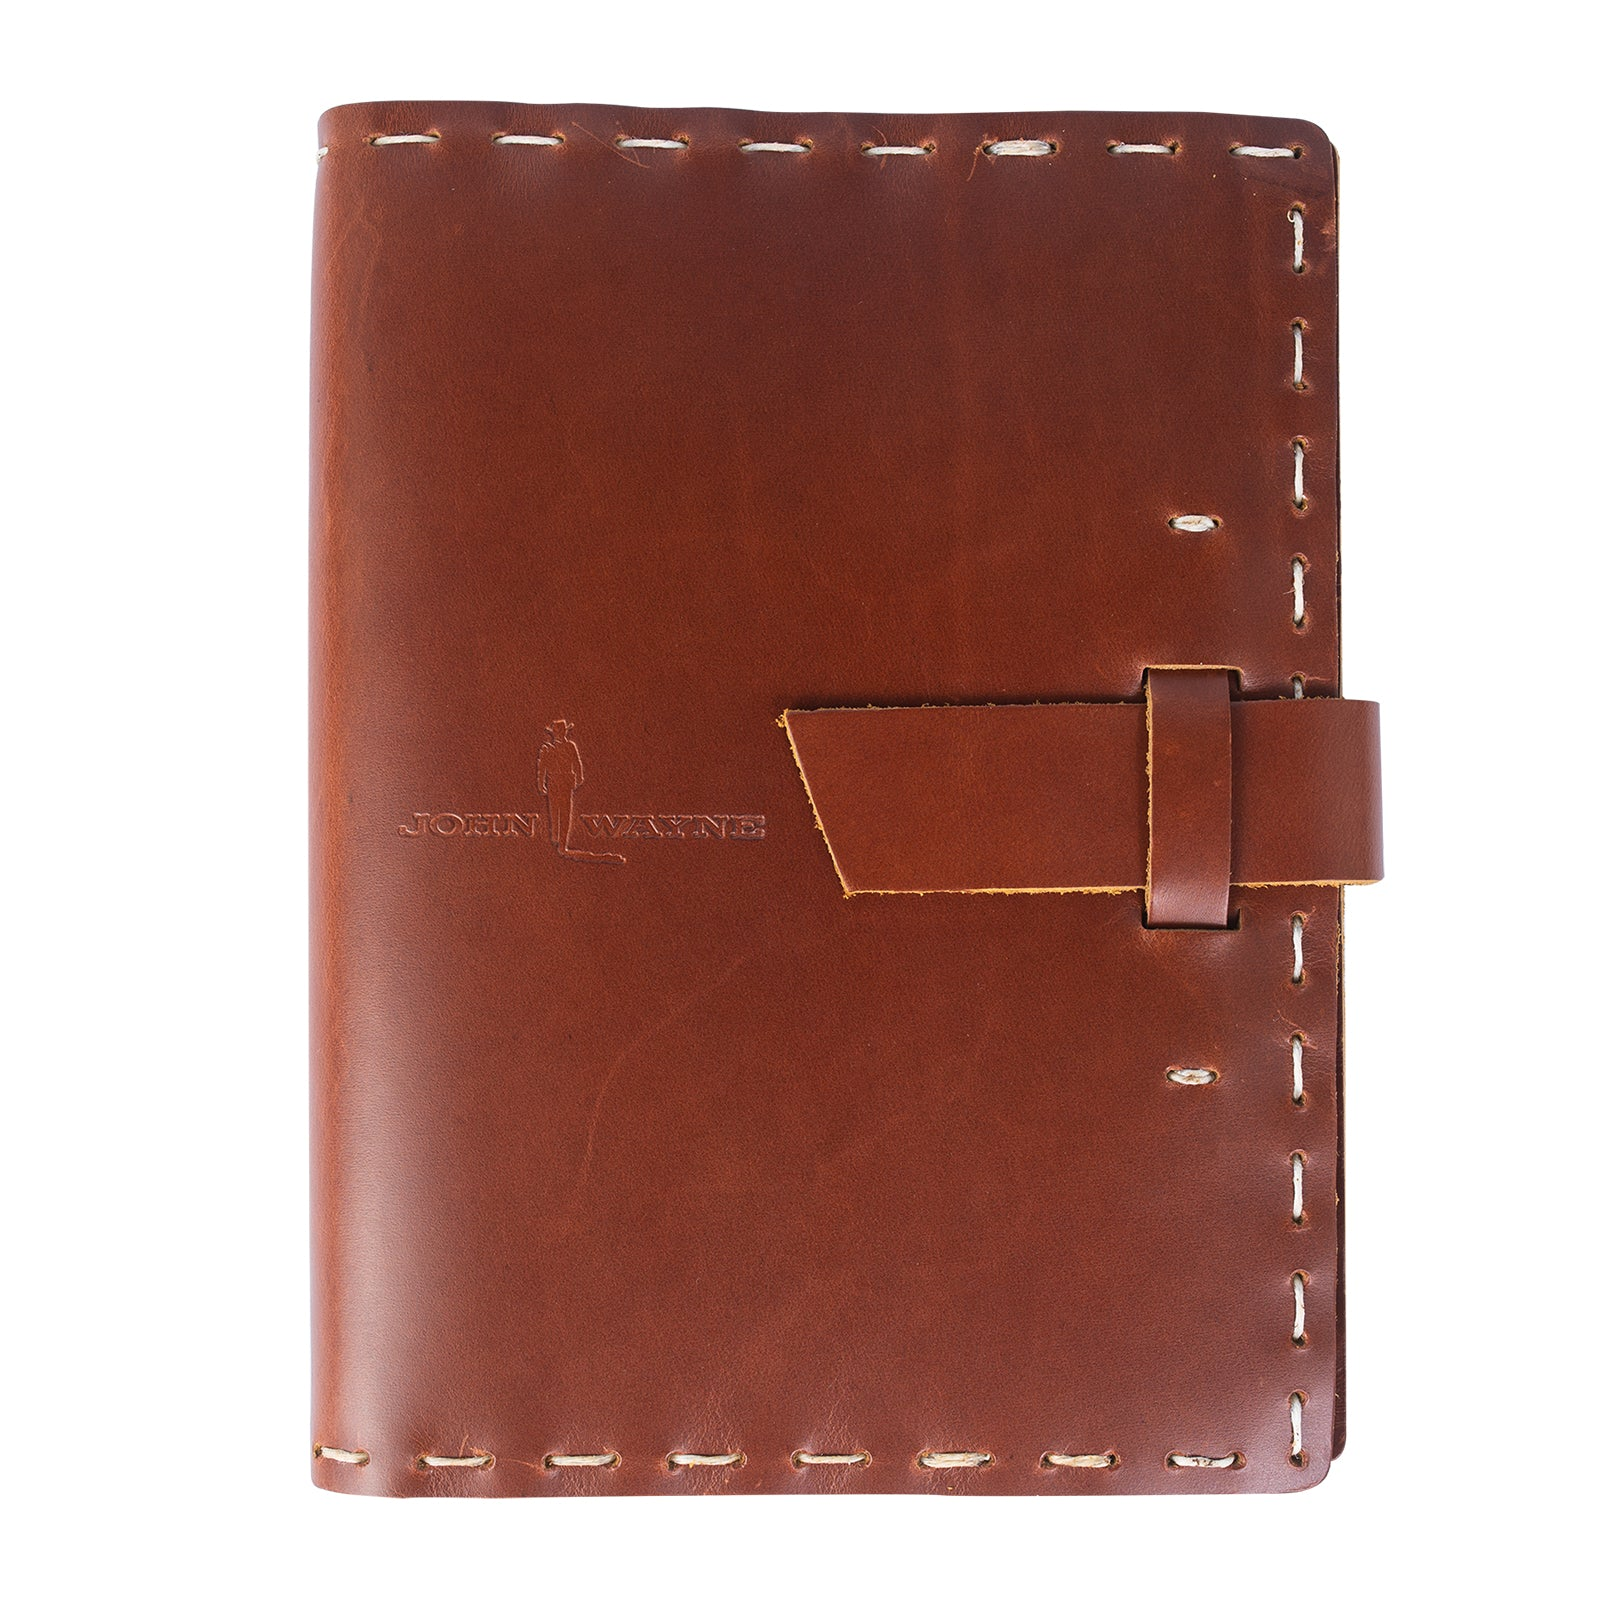 JW Silhouette Leather Notebook